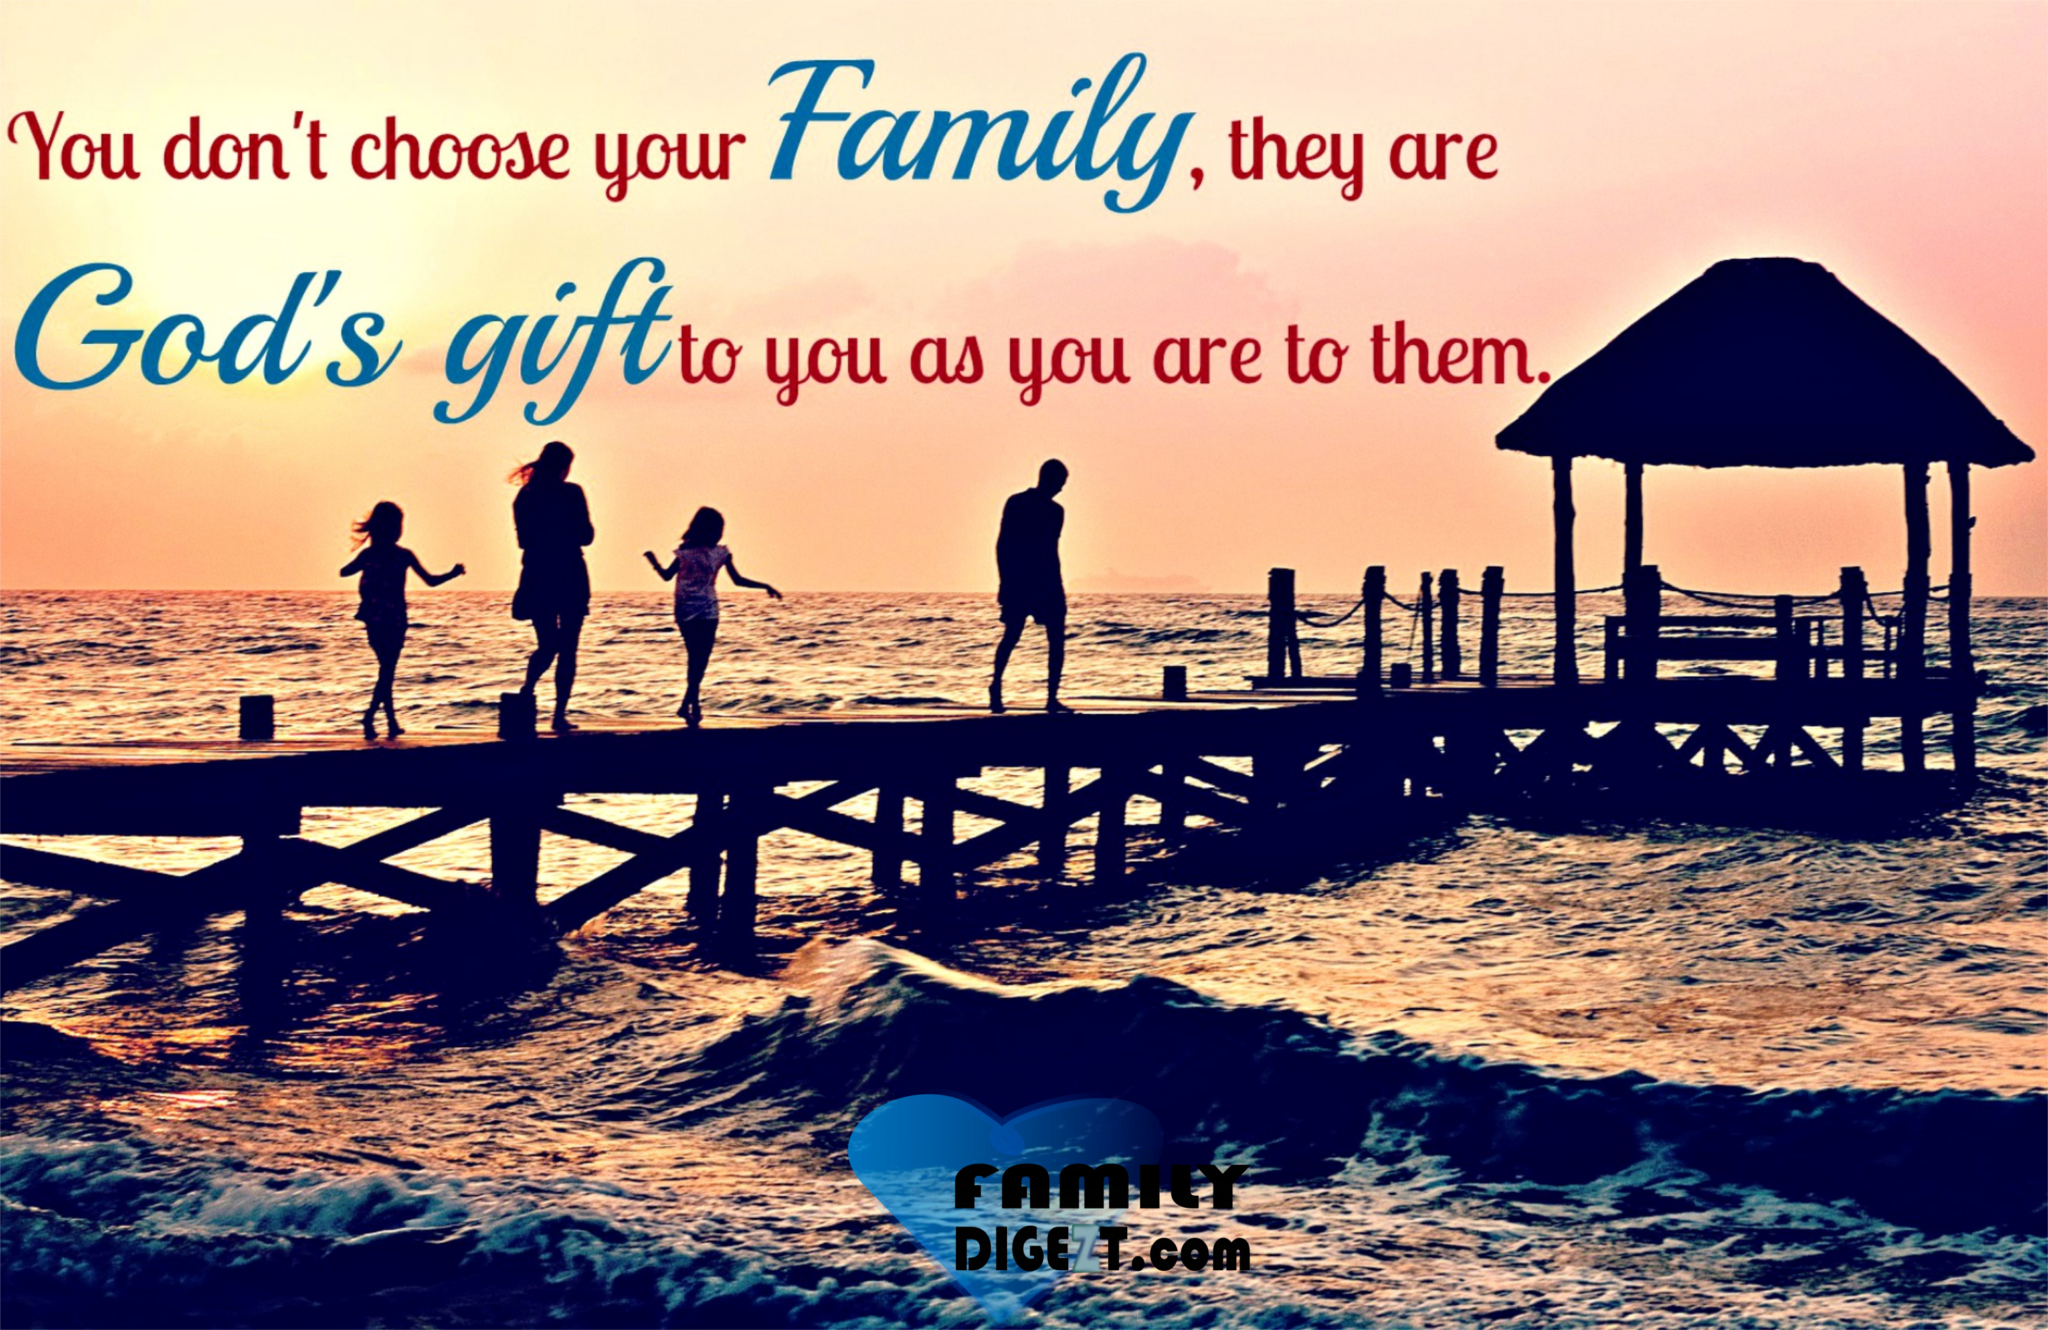 Family-Quote-you-dont-choose-your-family-they-are-gods-gift-to-you-as-you-are-to-them-familydigezt